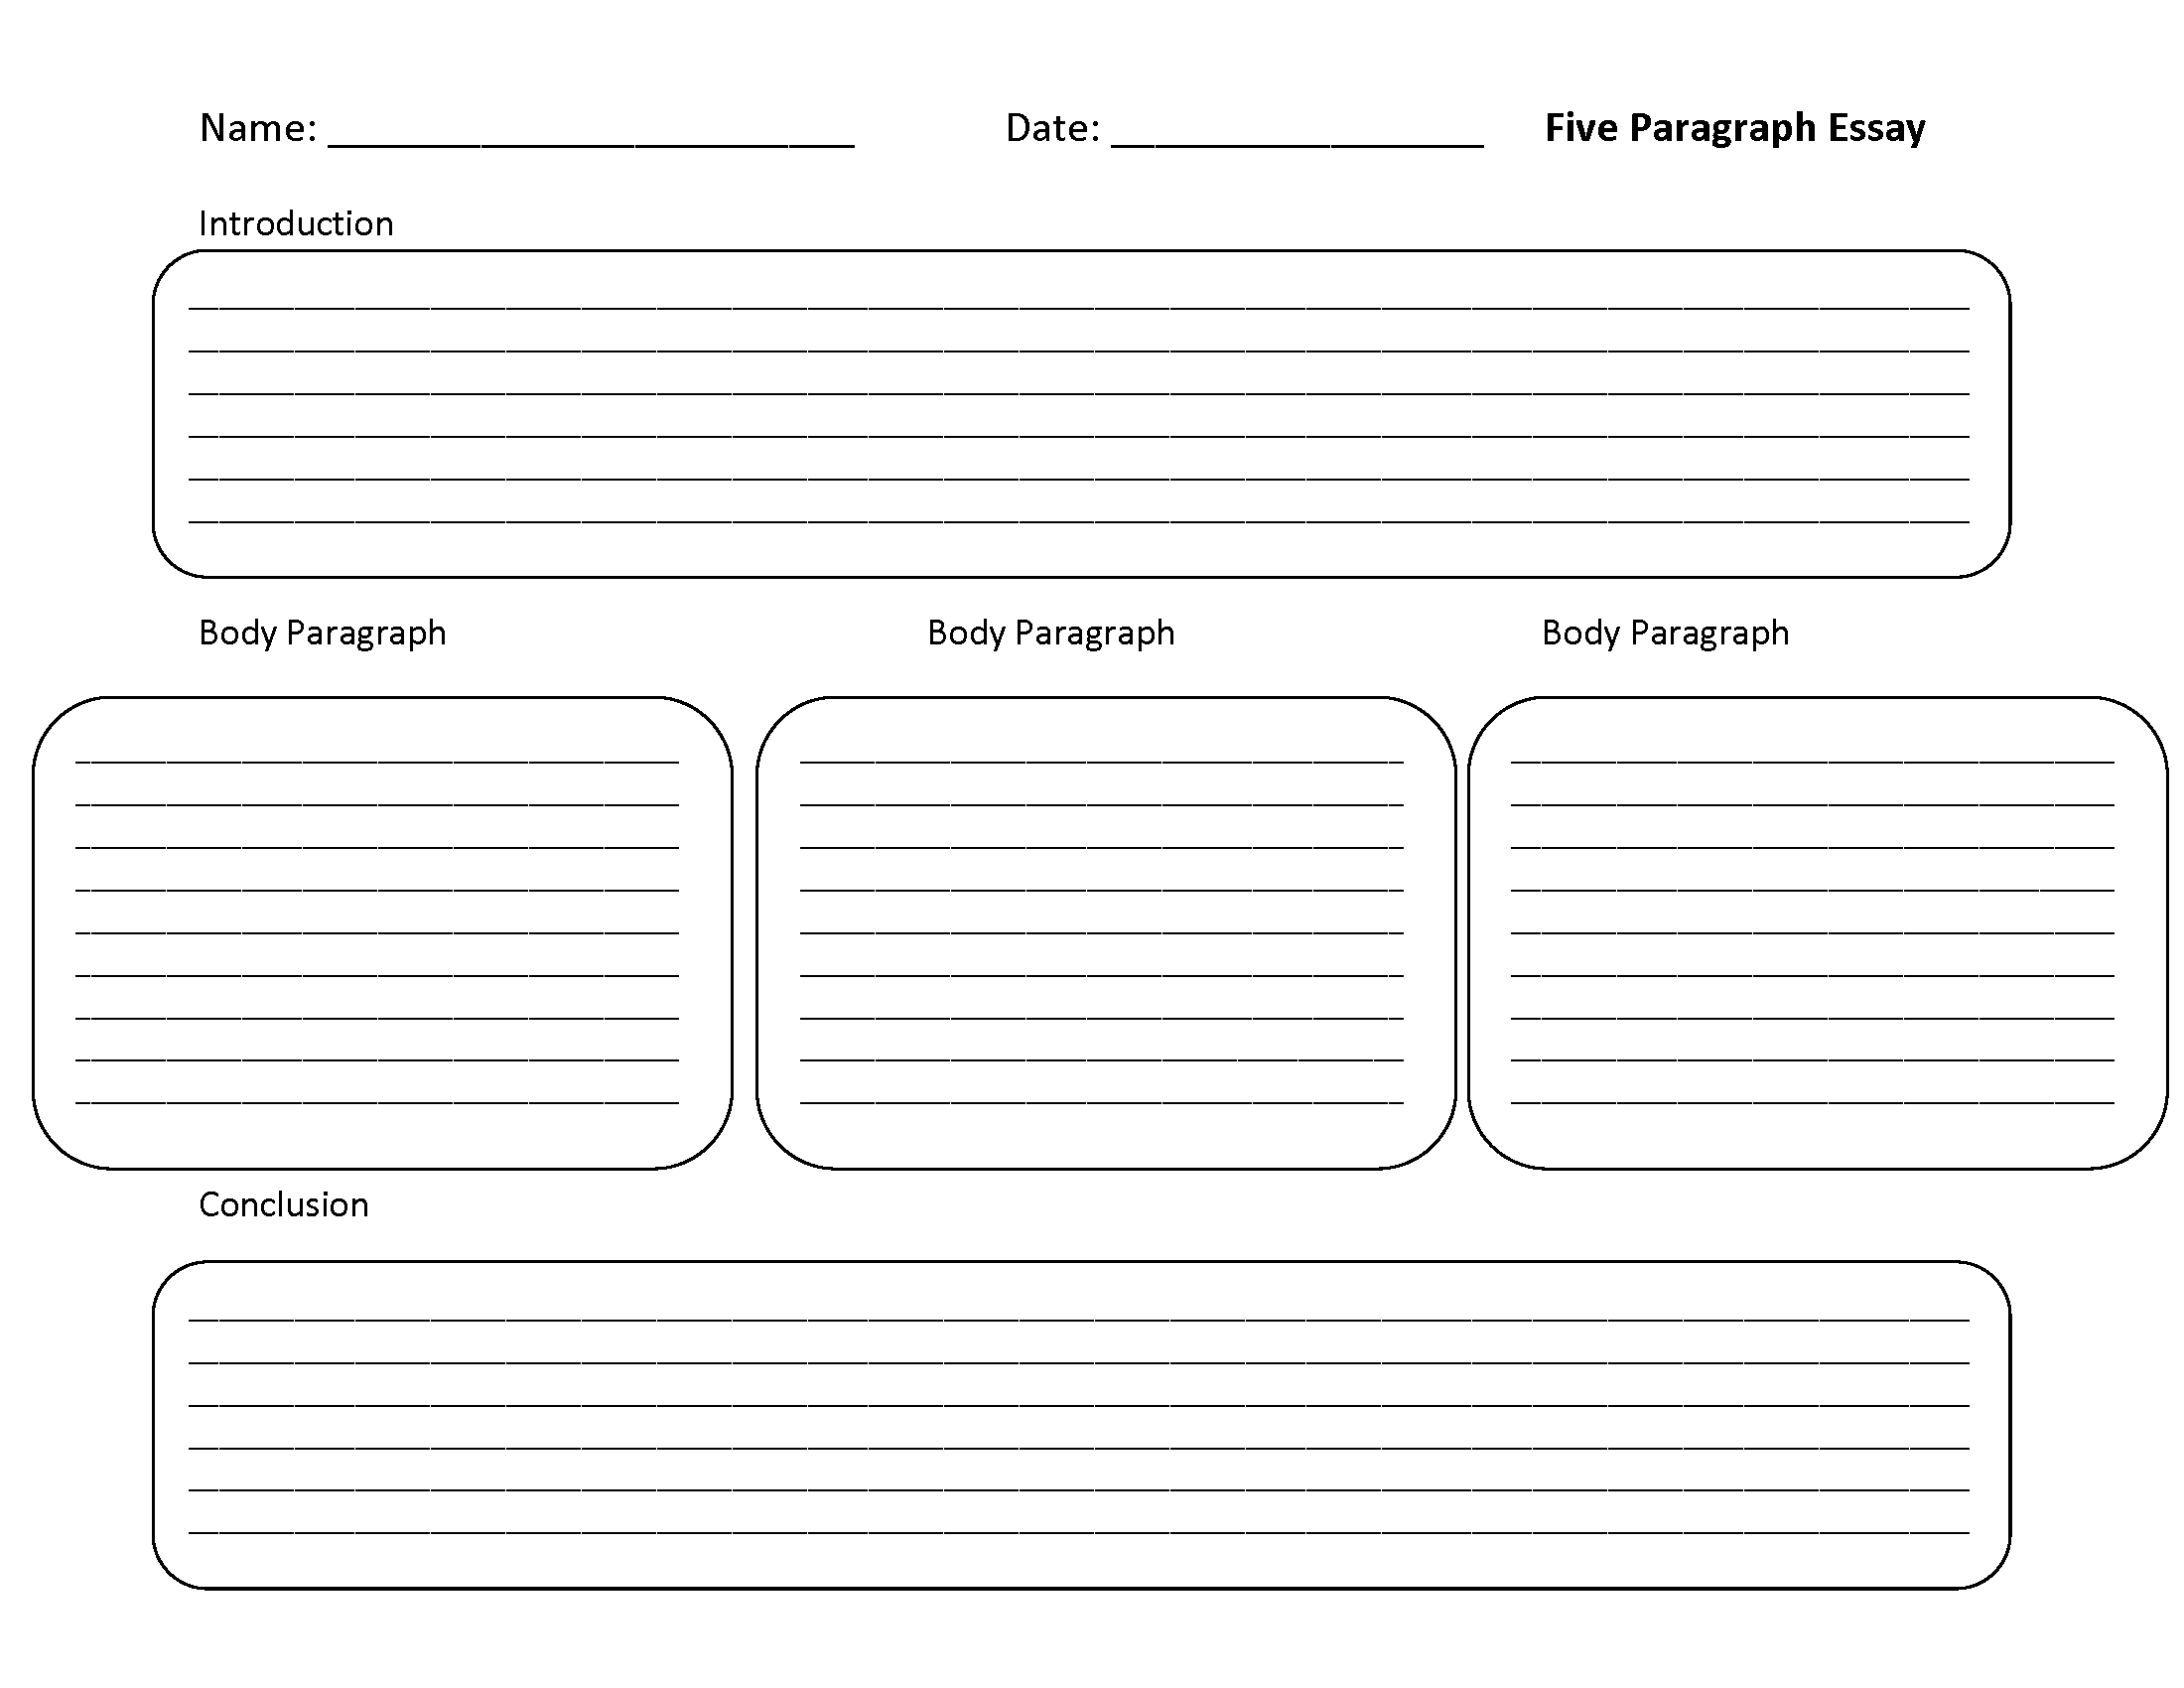 Five Paragraph Template Worksheet